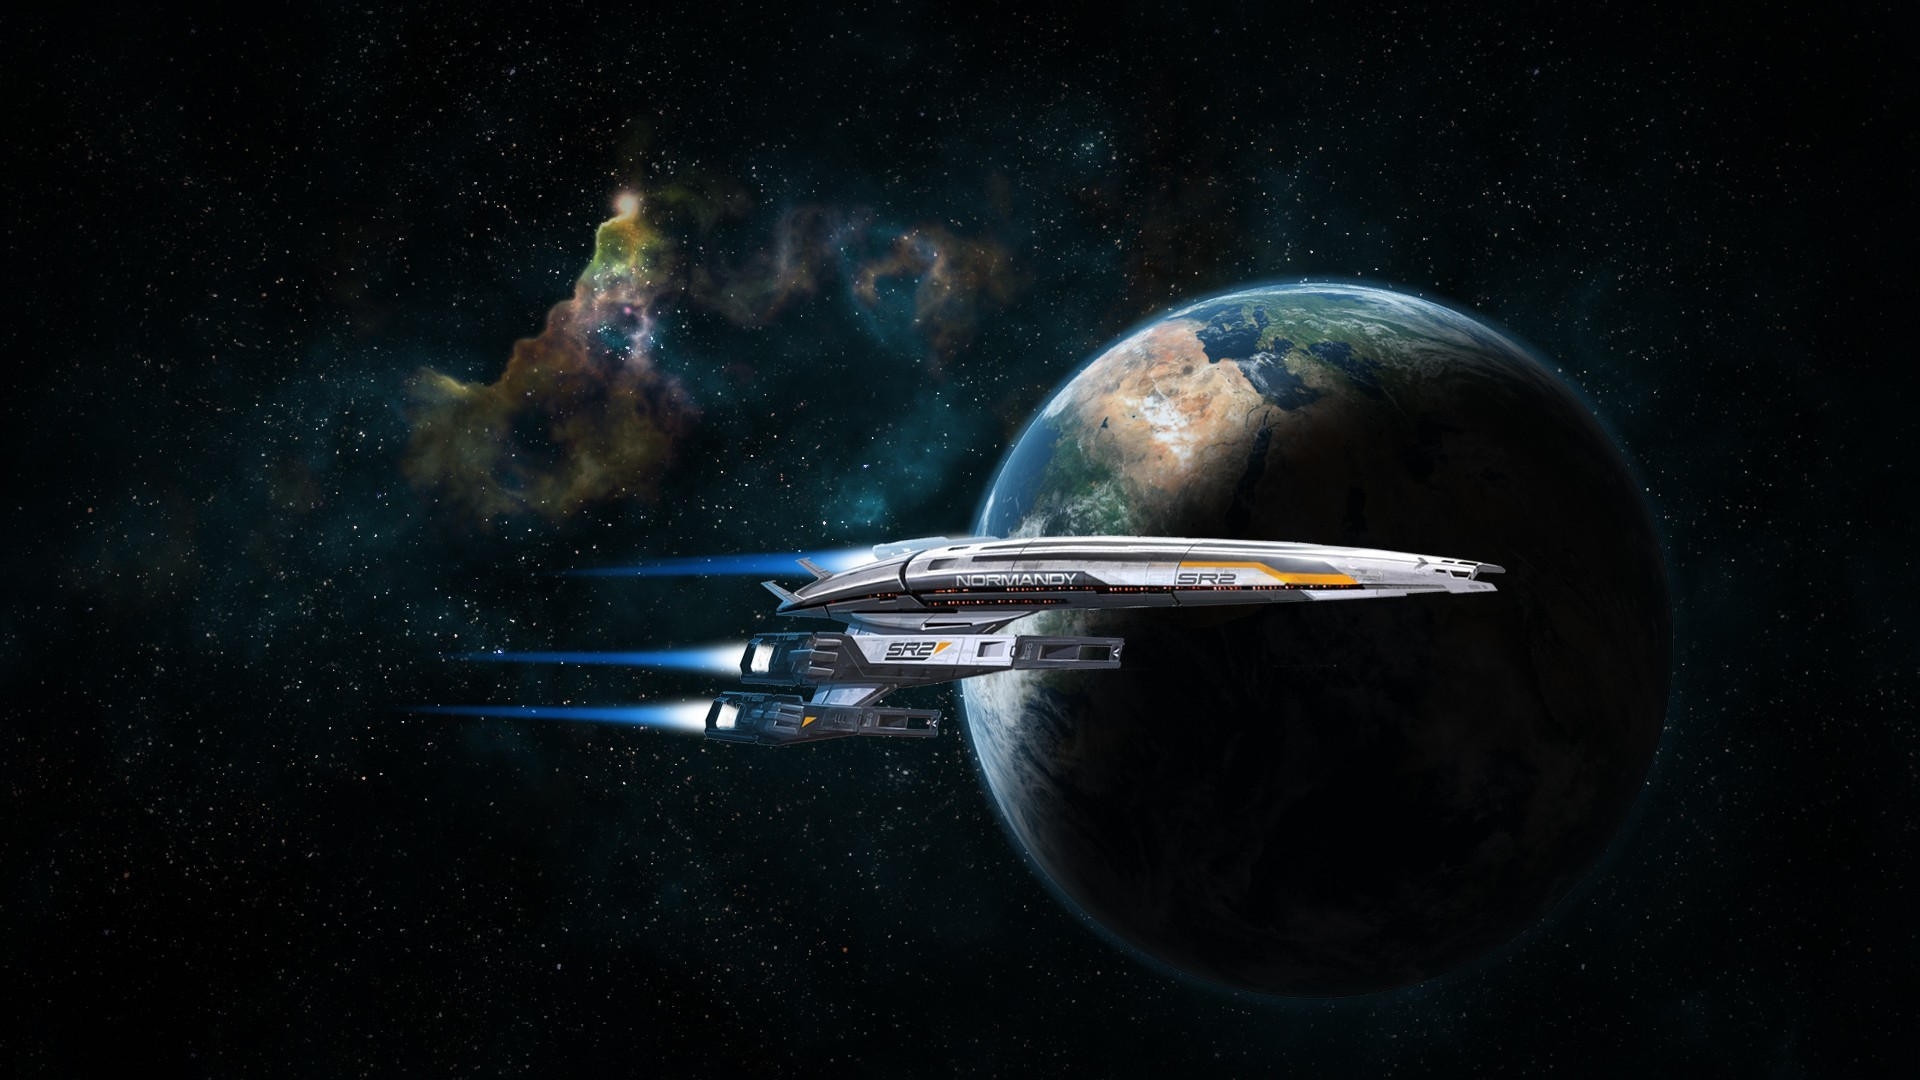 outer space normandy planets HD Wallpaper